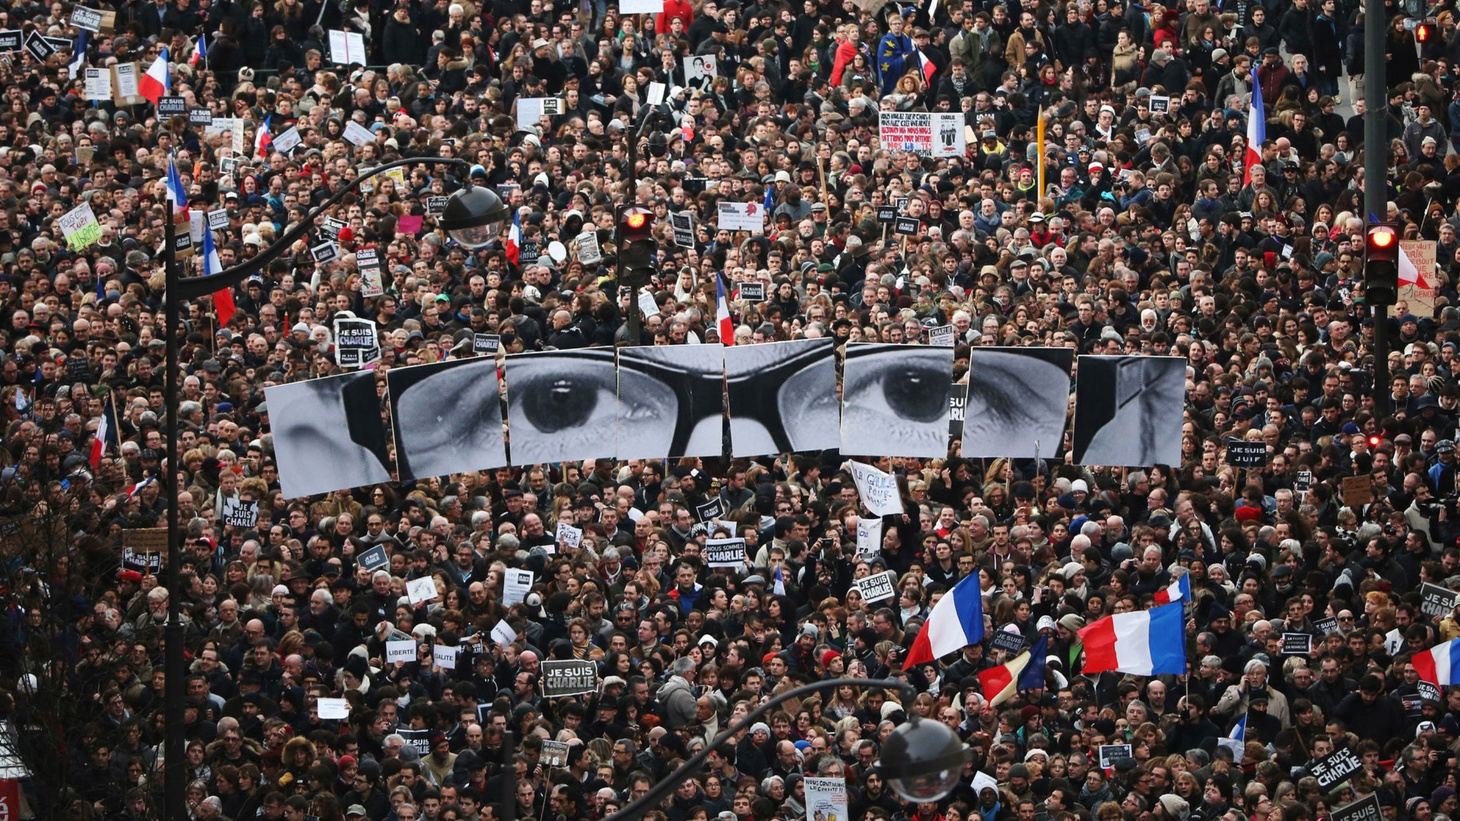 Last week in Paris, 17 people were killed in terrorist attacks on a satirical magazine and a kosher grocery story. Yesterday, some three million angry people took to the streets all over the country. Despite that show of national unity, can France contain a backlash against Muslims…or increased anti-Semitism? What's the potential impact on the rest of Europe?